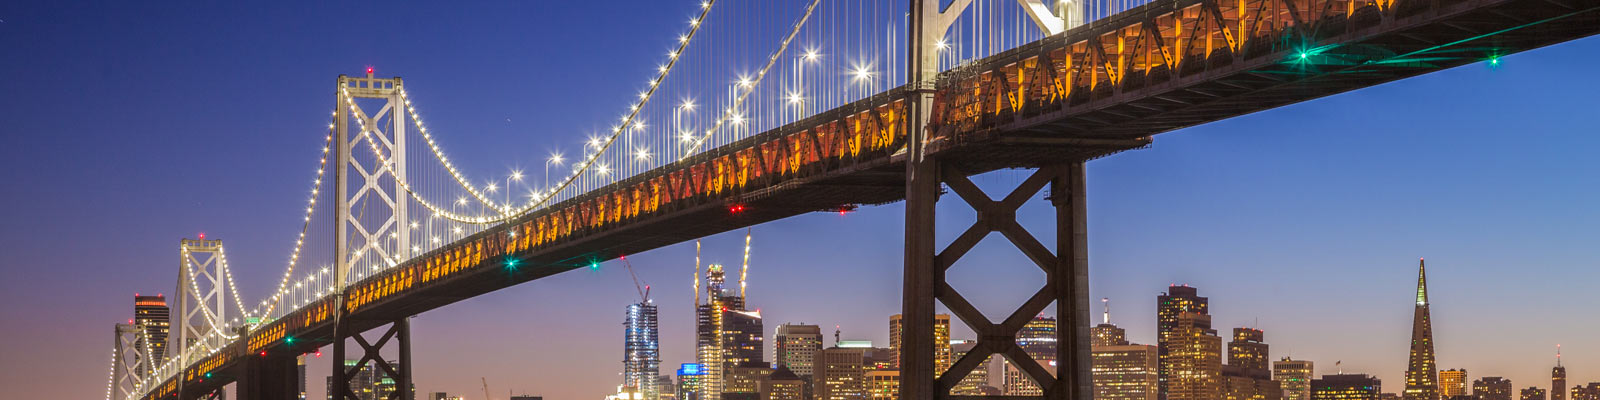 This is an image of the Oakland Bay Bridge. ASTA-USA provides professional translation services in Oakland.